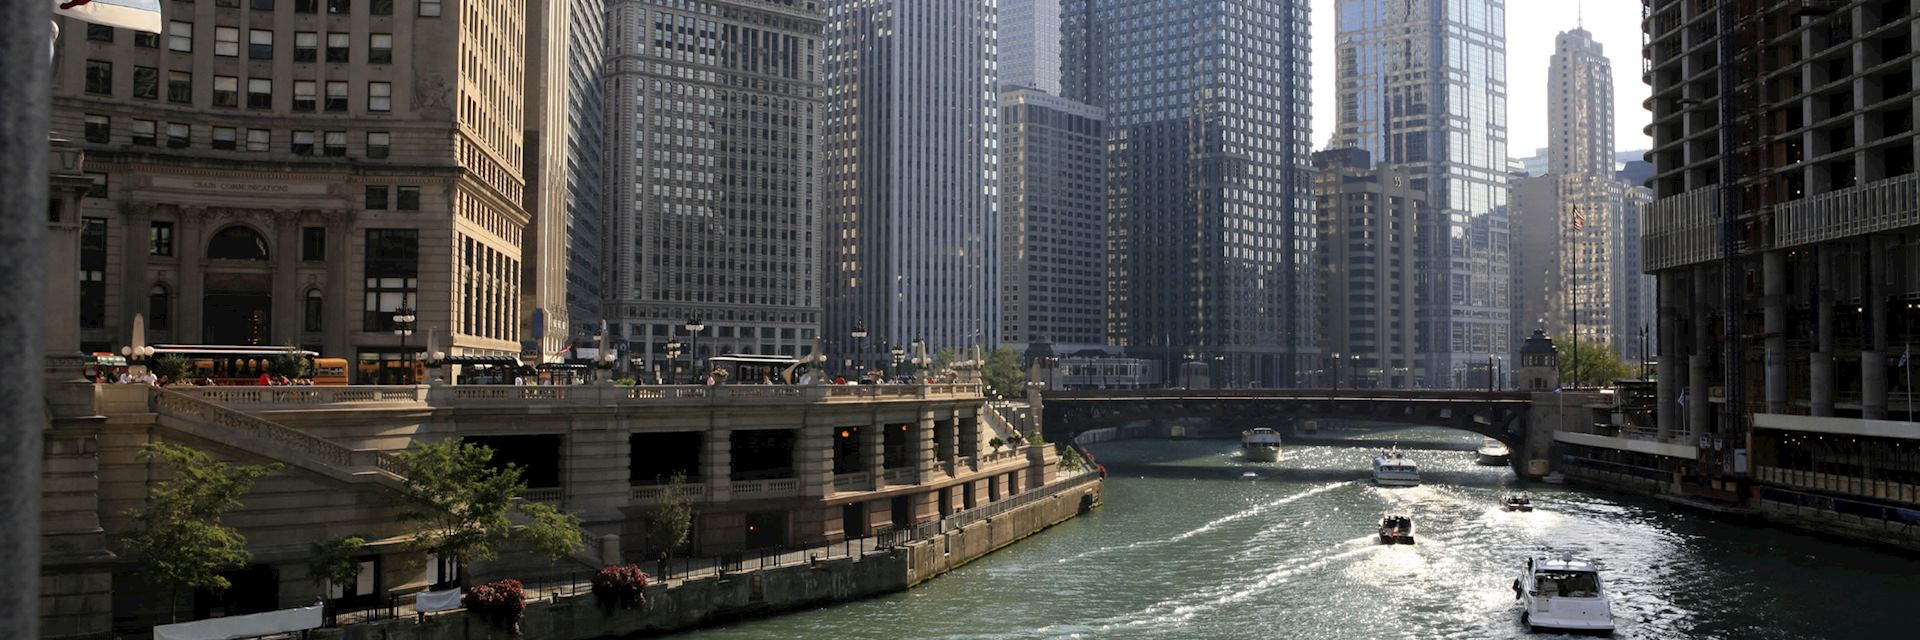 Chicago, the starting point for Route 66